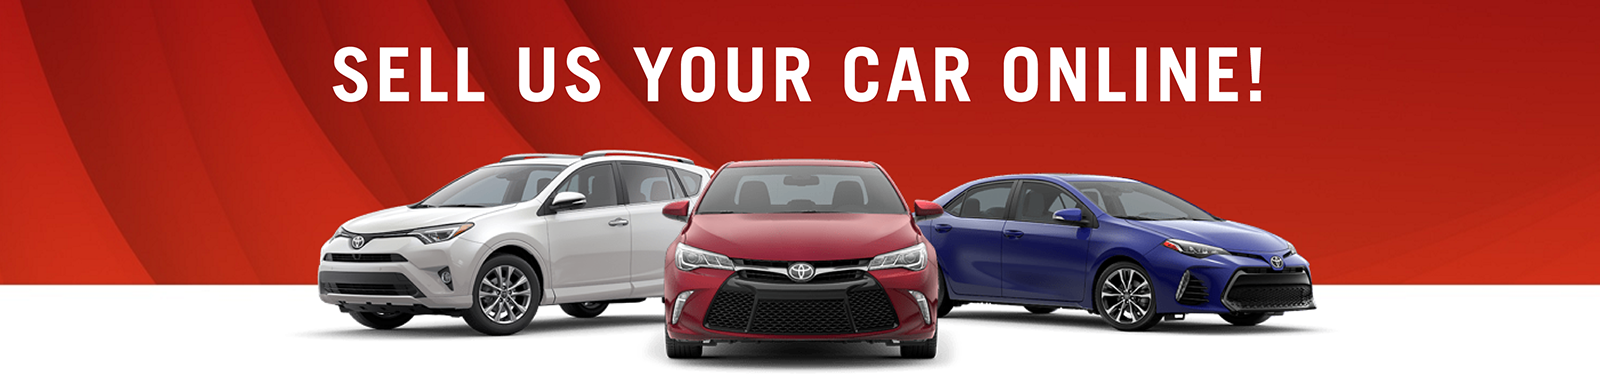 Sell Your Car Online for Cash Fast at Hamer Toyota